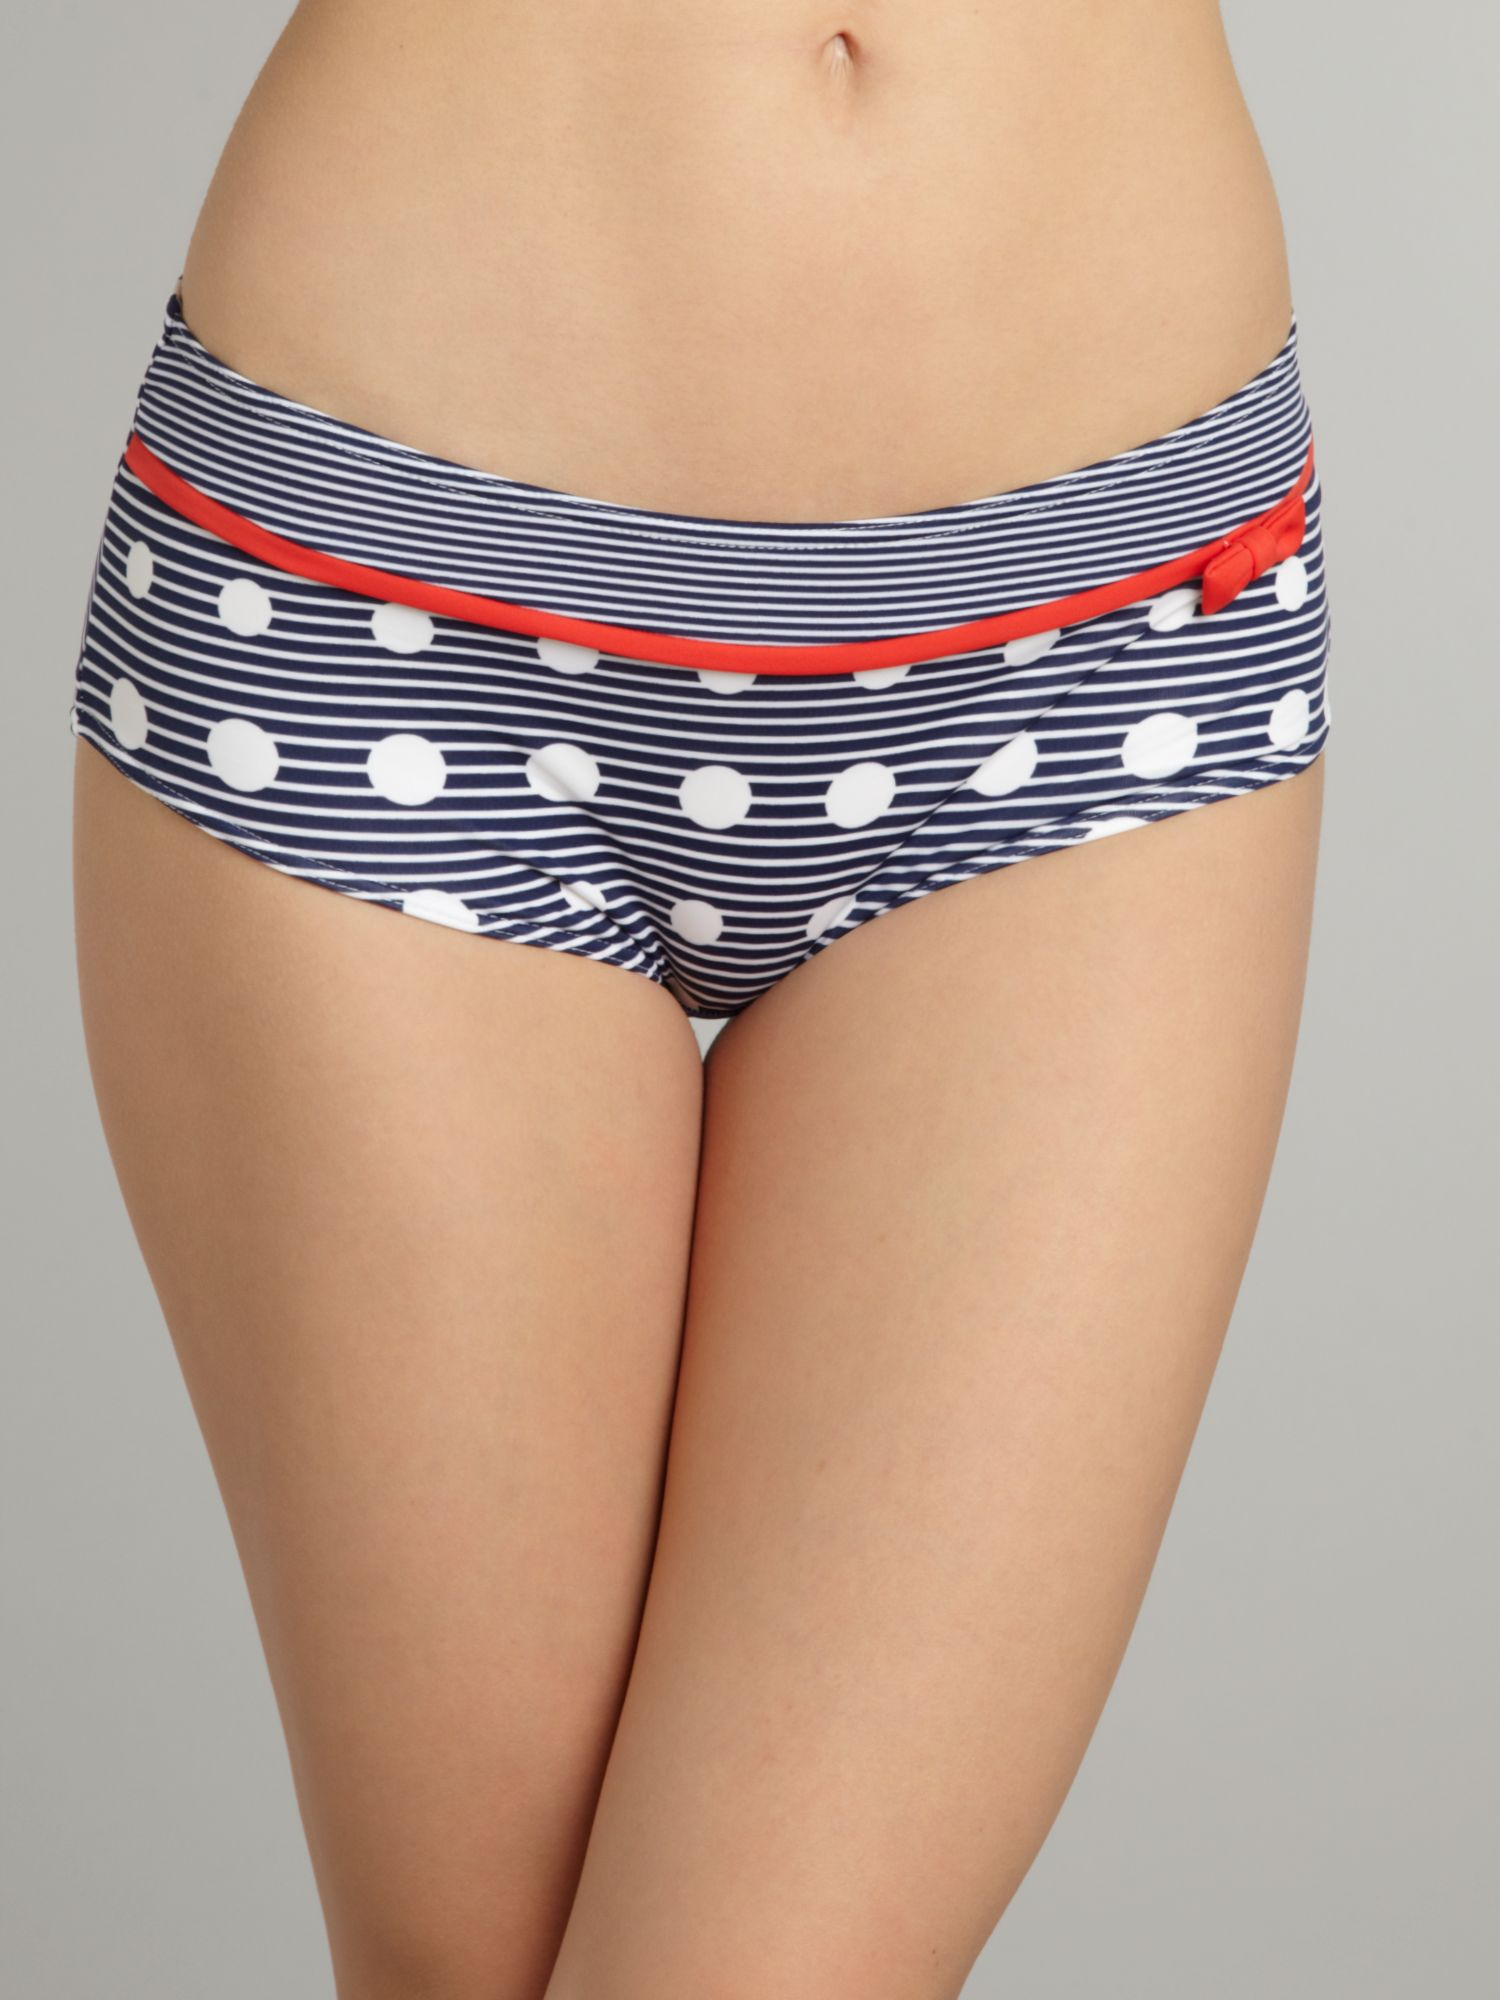 Hello Sailor short brief